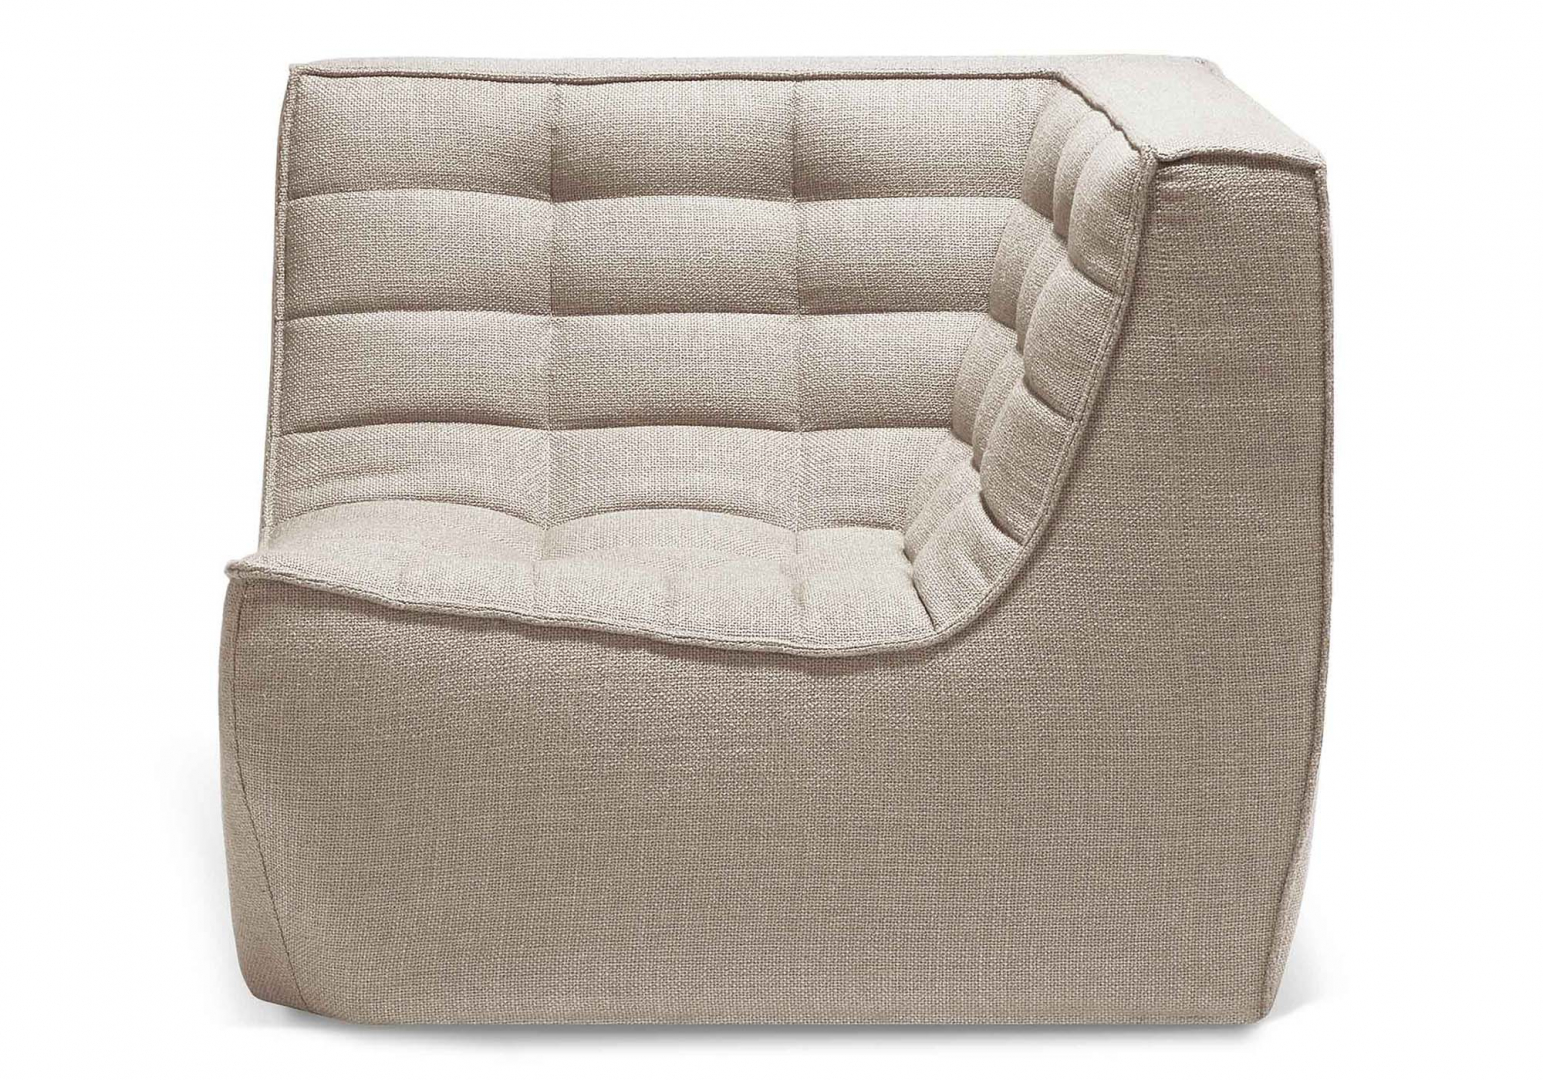 Fauteuil d'angle N701 design - ETHNICRAFT